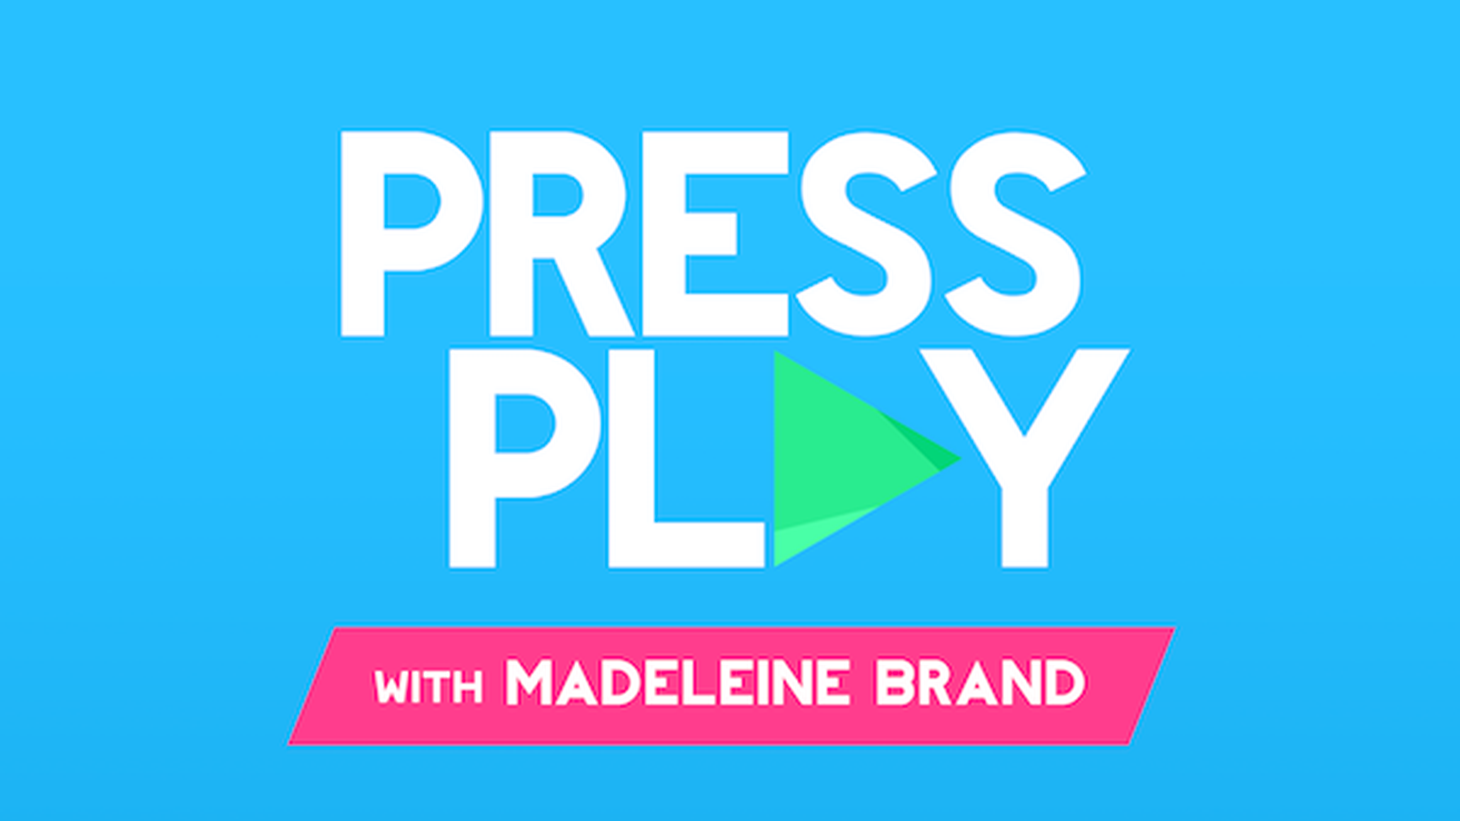 Host Madeleine Brand looks at news, culture and emerging trends through the lens of Los Angeles,weekdays at noon.